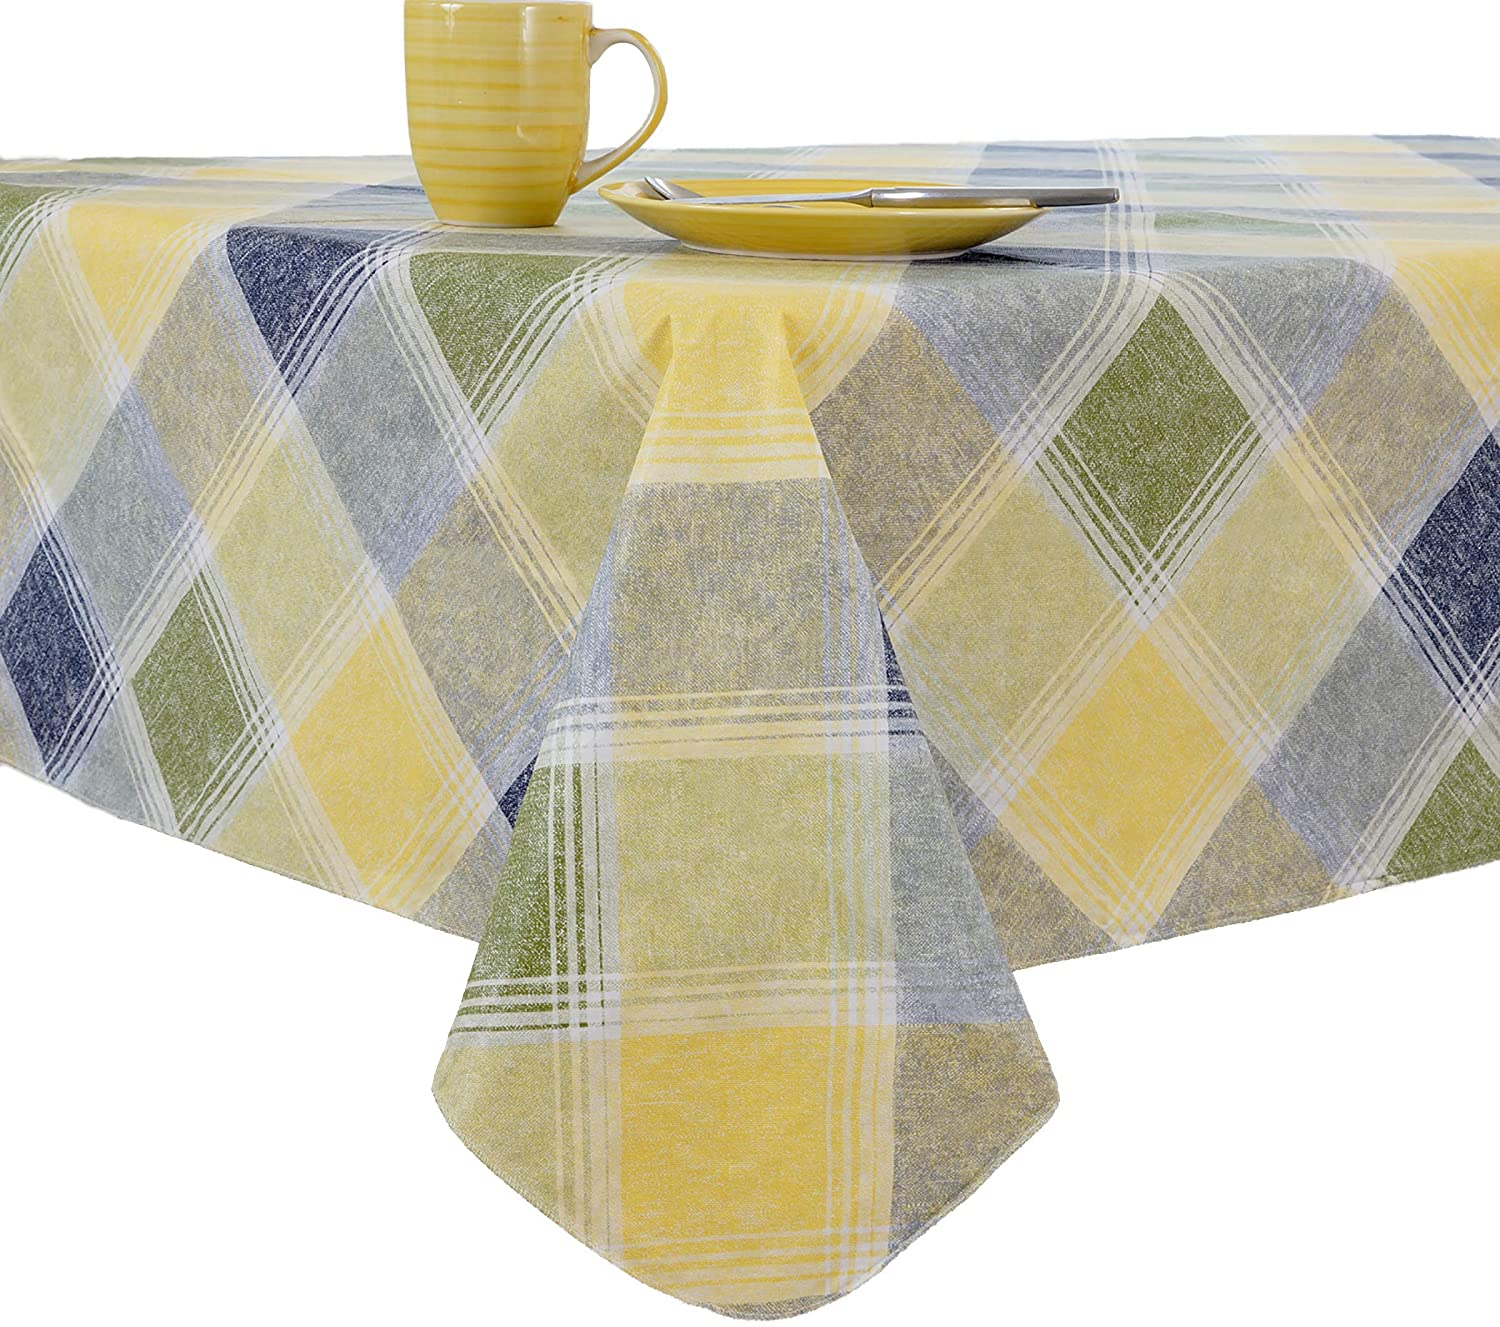 EVERYDAY LUXURIES Harmony Plaid Flannel Backed Indoor Outdoor Vinyl Table Linens, 90-Inch Round, Blue